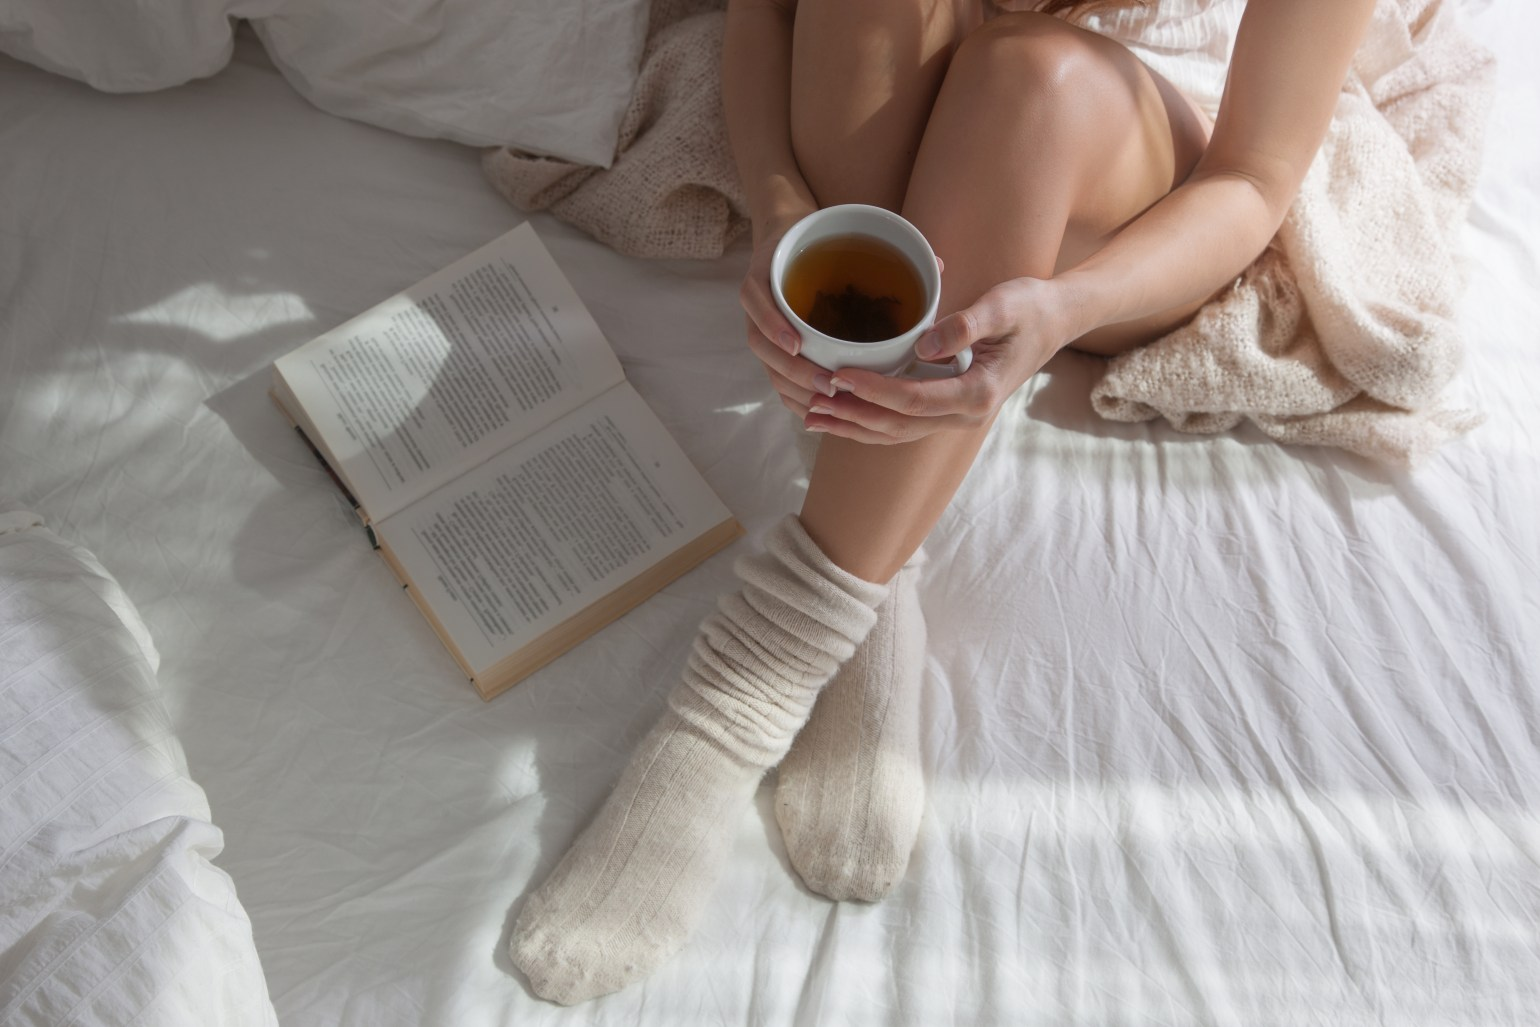 Girl with Tea on Bed_329565530.jpg